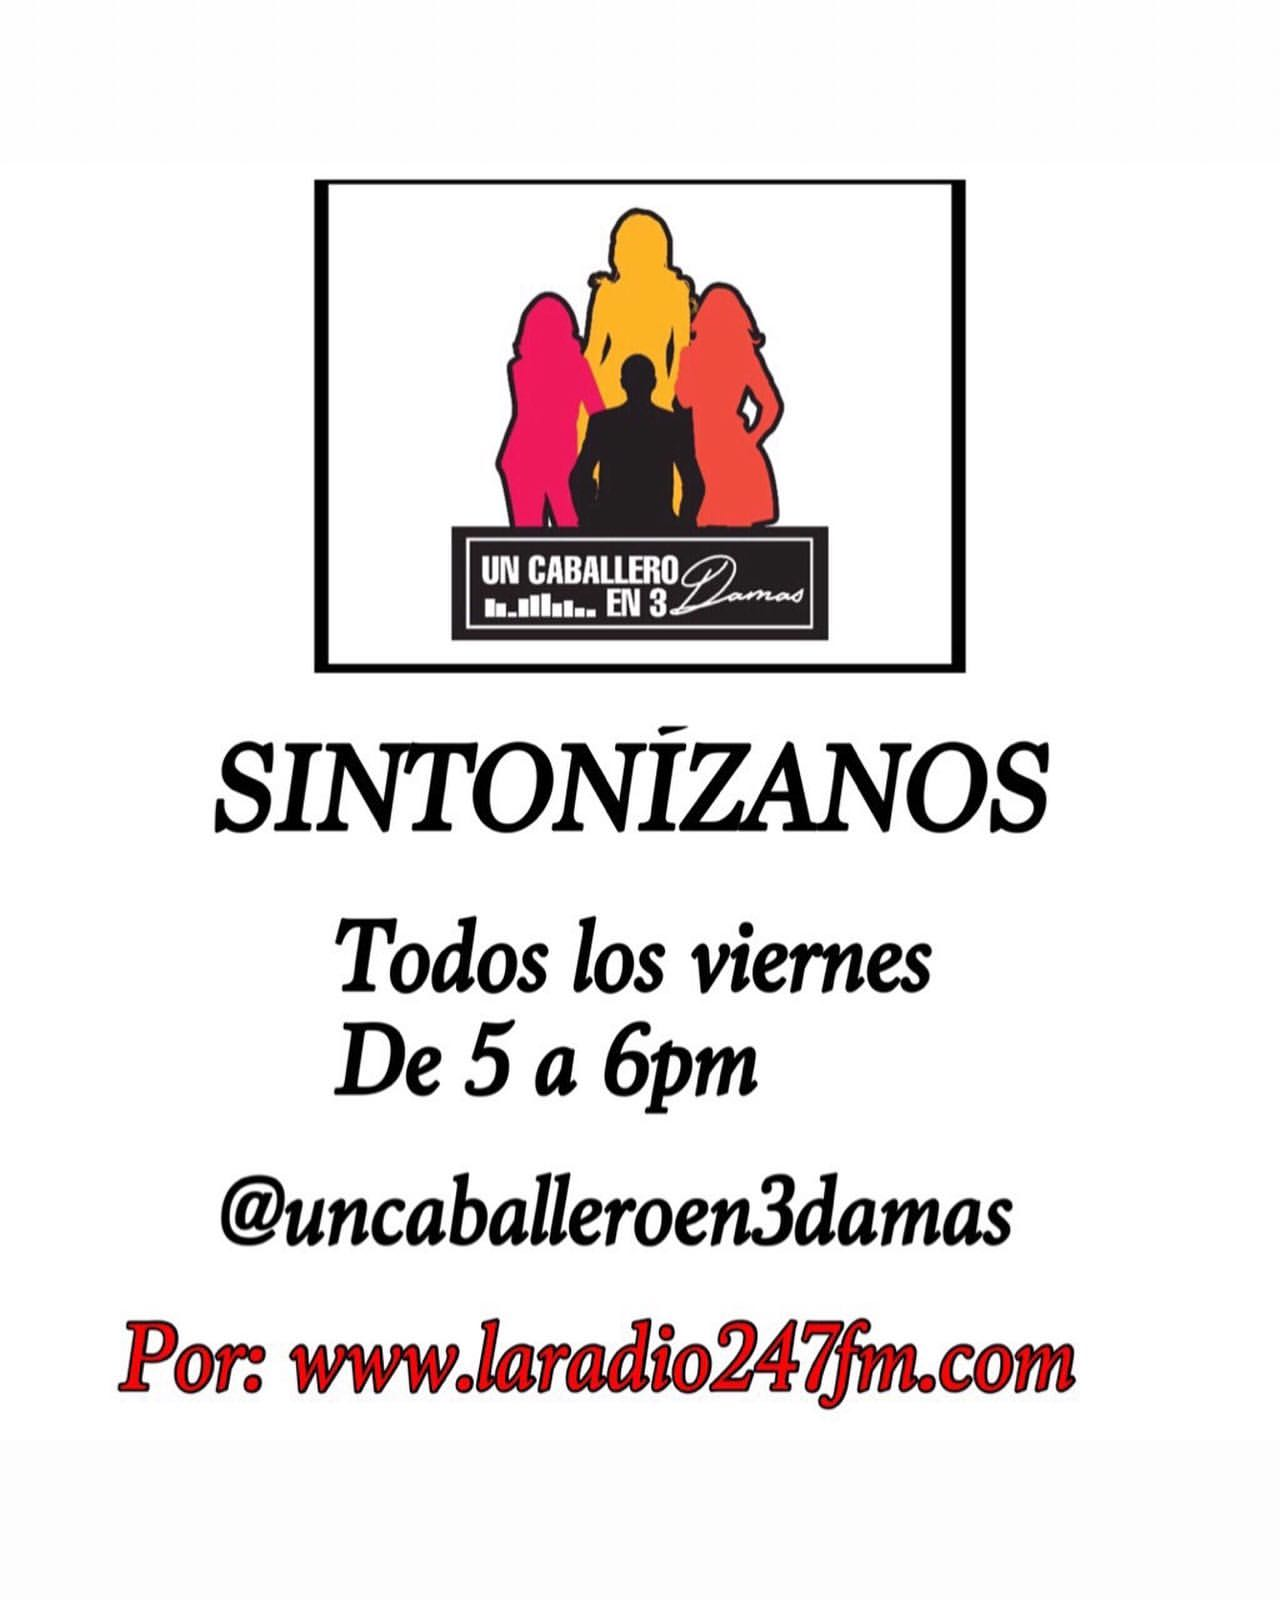 UN CABALLERO EN3 DAMAS BLOQUE 4 6 DIC #LARADIO247FM https://youtu.be/R2NH8hs4L-A